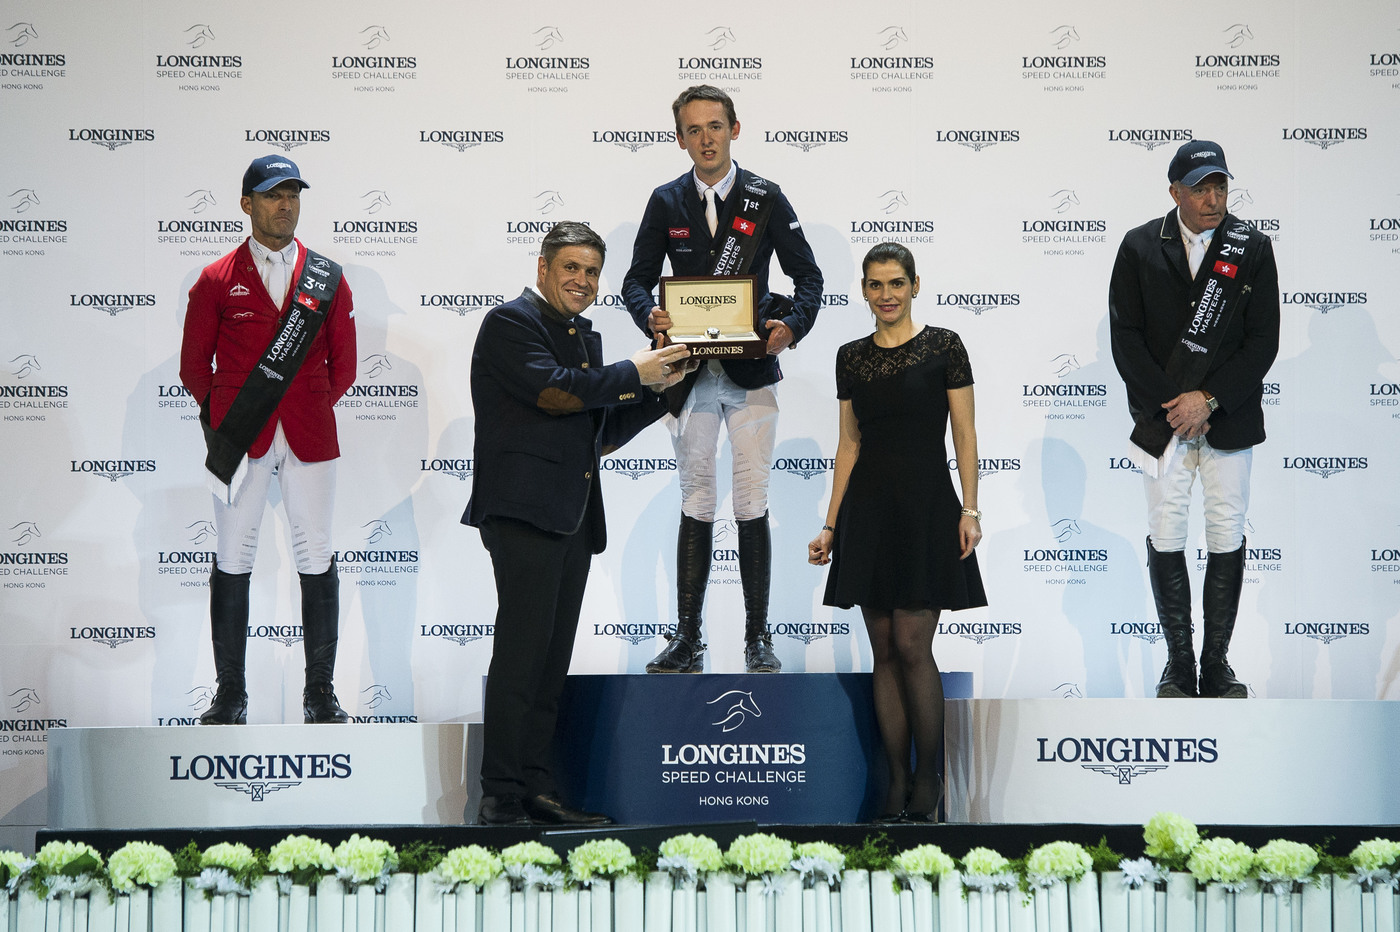 Longines Show Jumping Event: Marco Kutscher achieved the incredible feat of winning the bonus of the Longines Masters 6